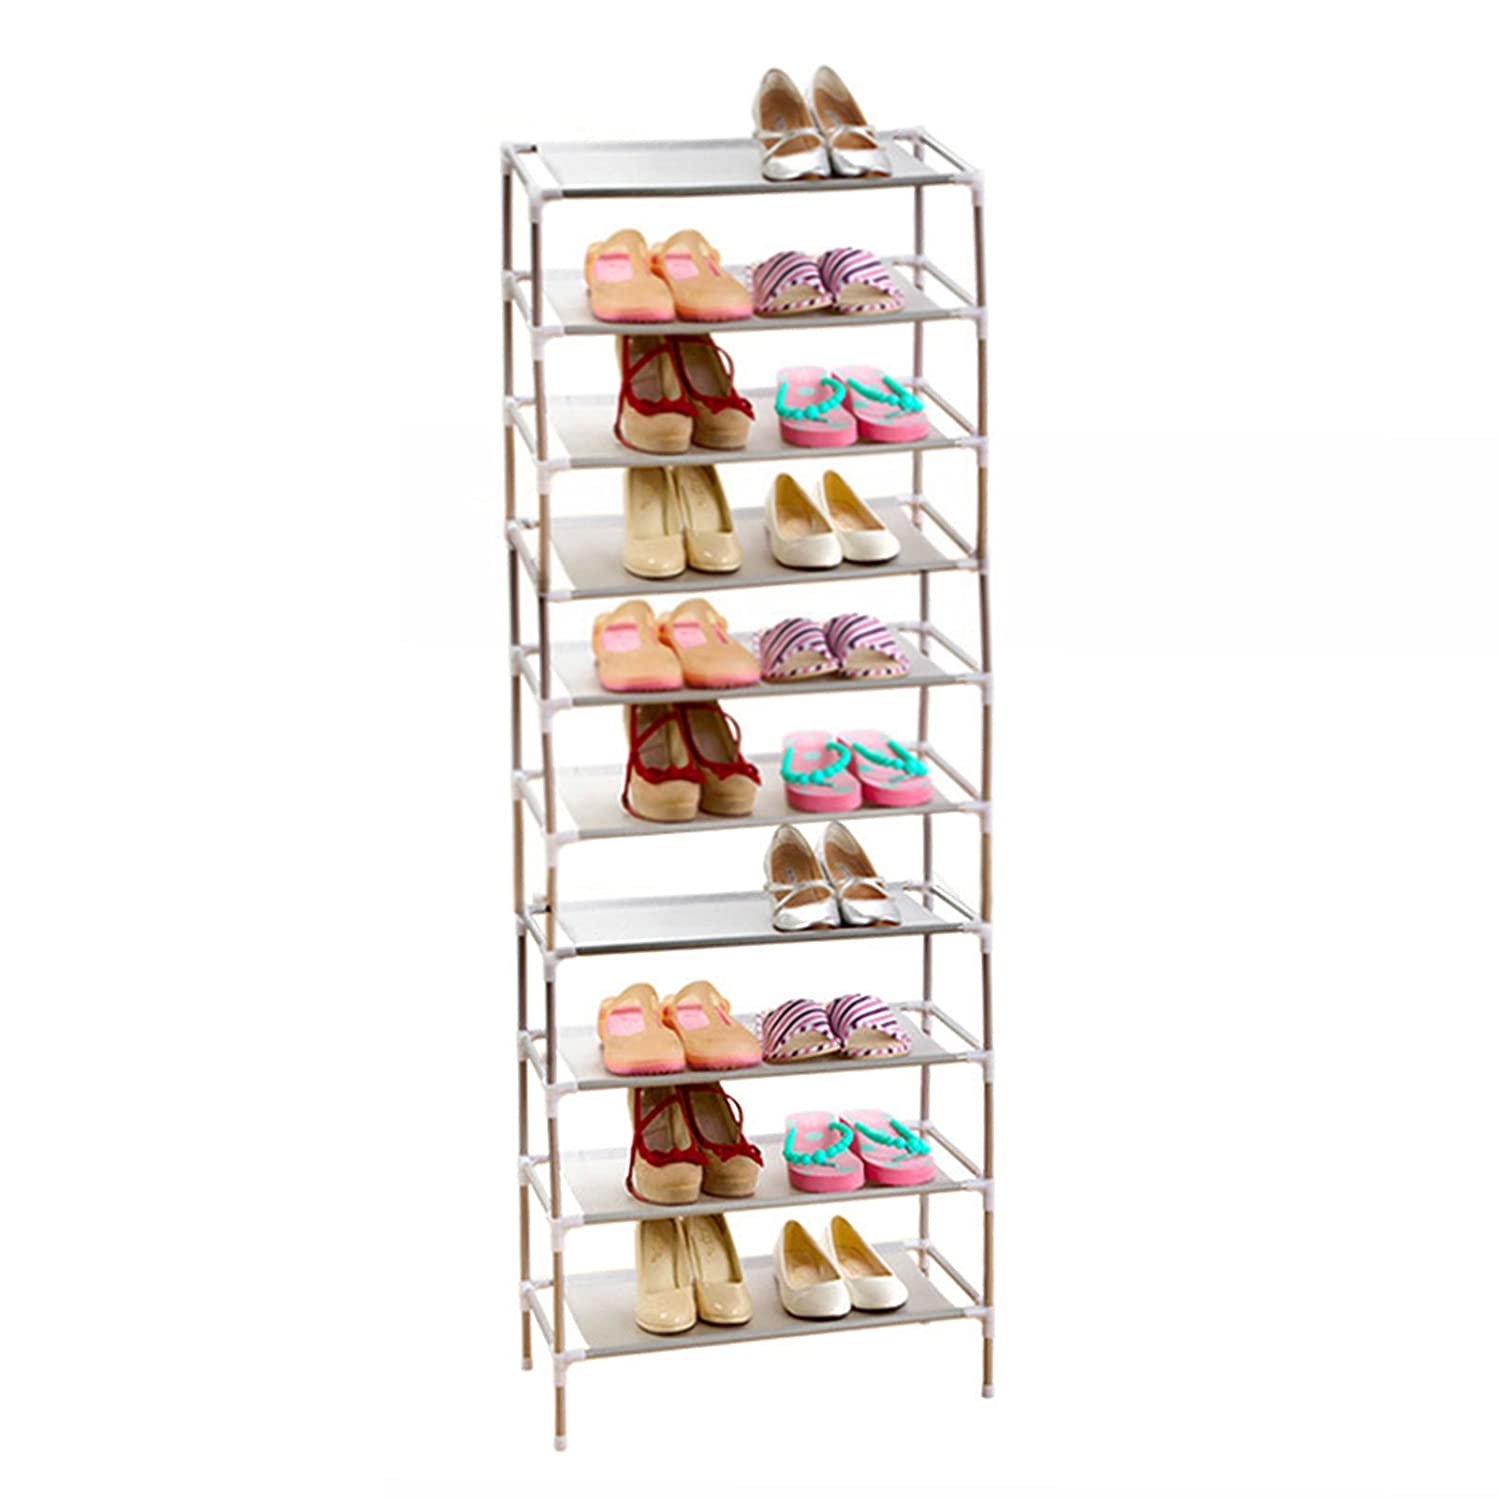 acornfort s115 10 tier adjustable shoe storage shoe rack organiser shelf hold stand for 30 pairs space saving easy assemble amazoncouk kitchen u0026